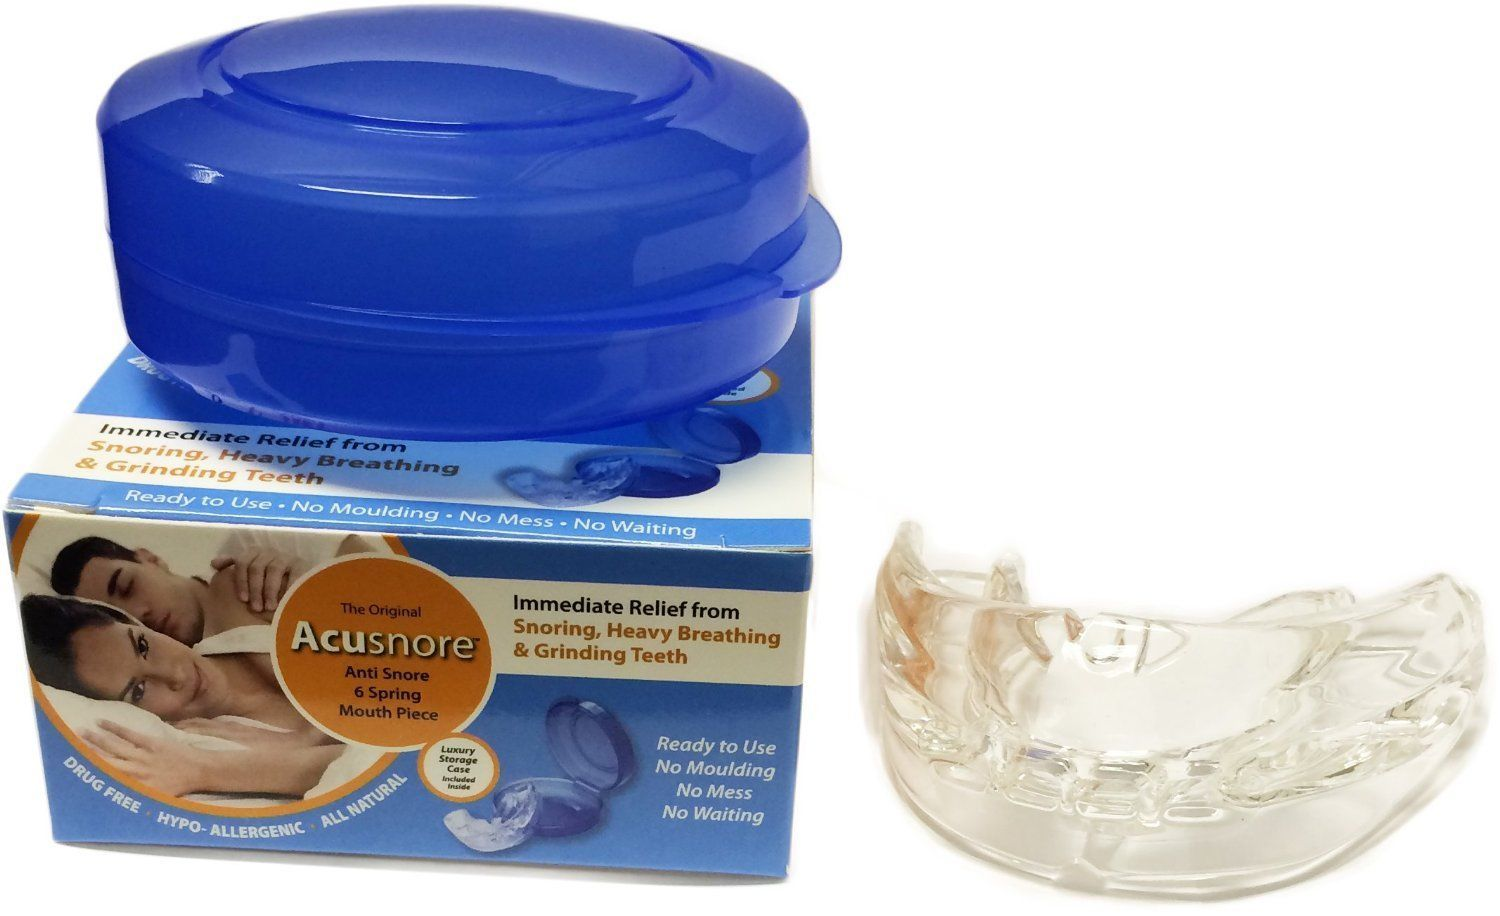 Acusnore Anti Snore 6 Spring Mouth Piece by  Forever Cosmetics